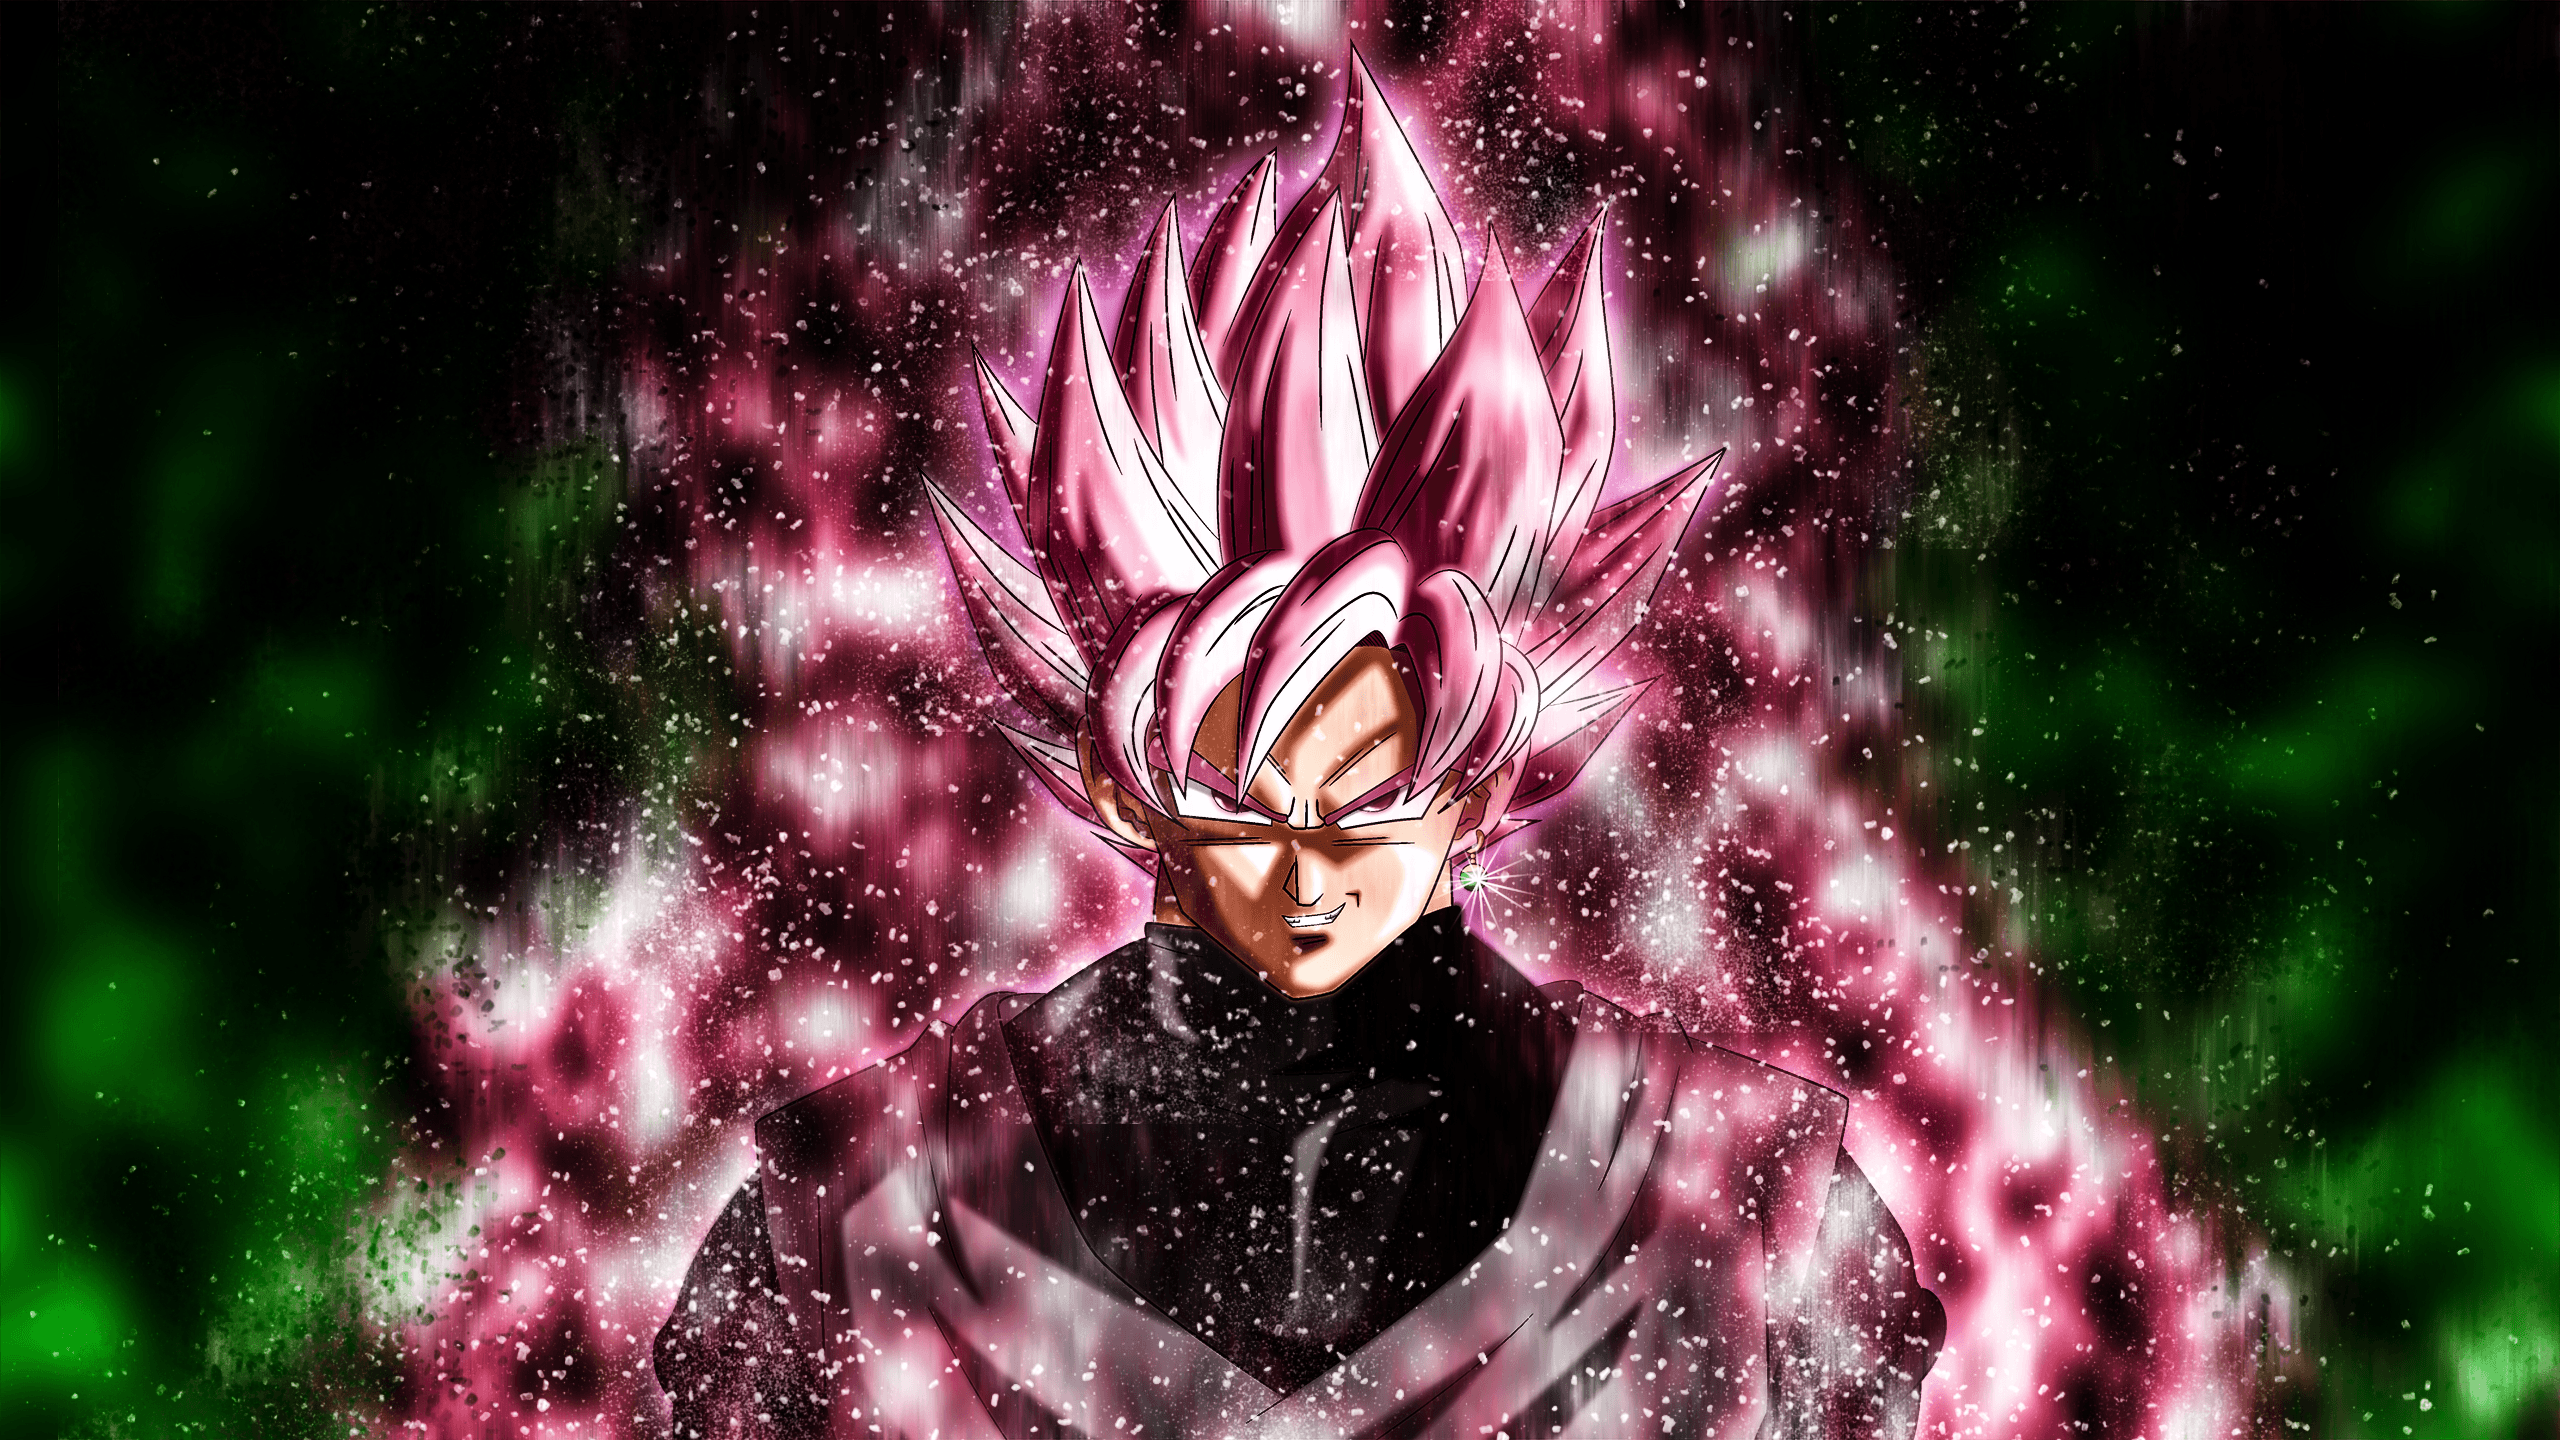 Black Goku Ssr Wallpapers Top Free Black Goku Ssr Backgrounds Wallpaperaccess